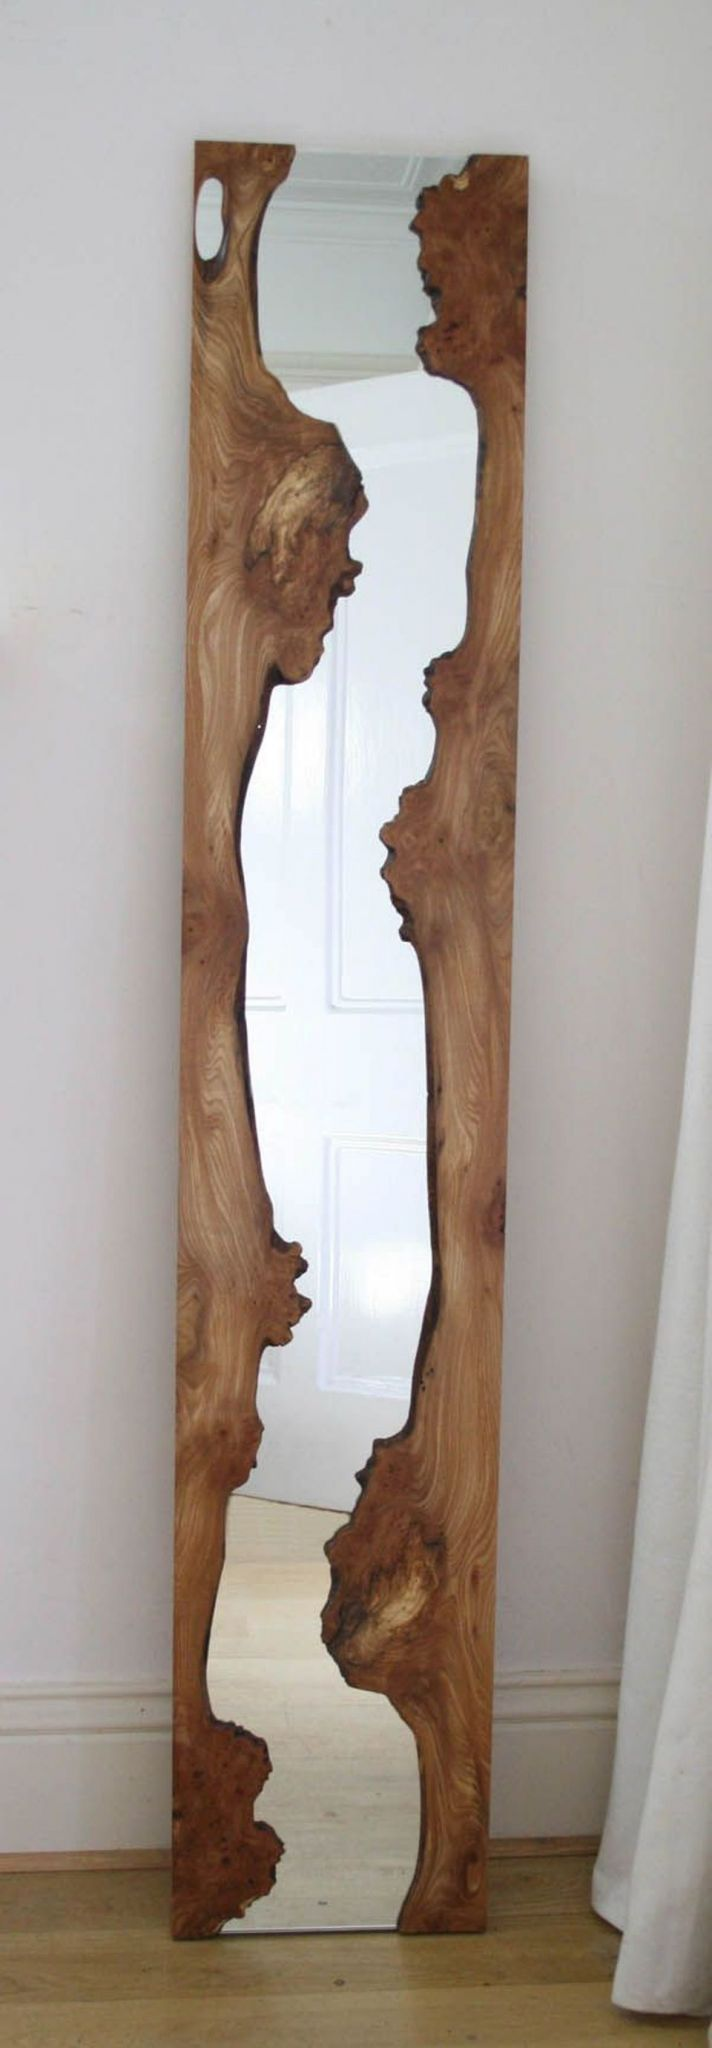 Log Enclosed Mirror that the Light Runs Through